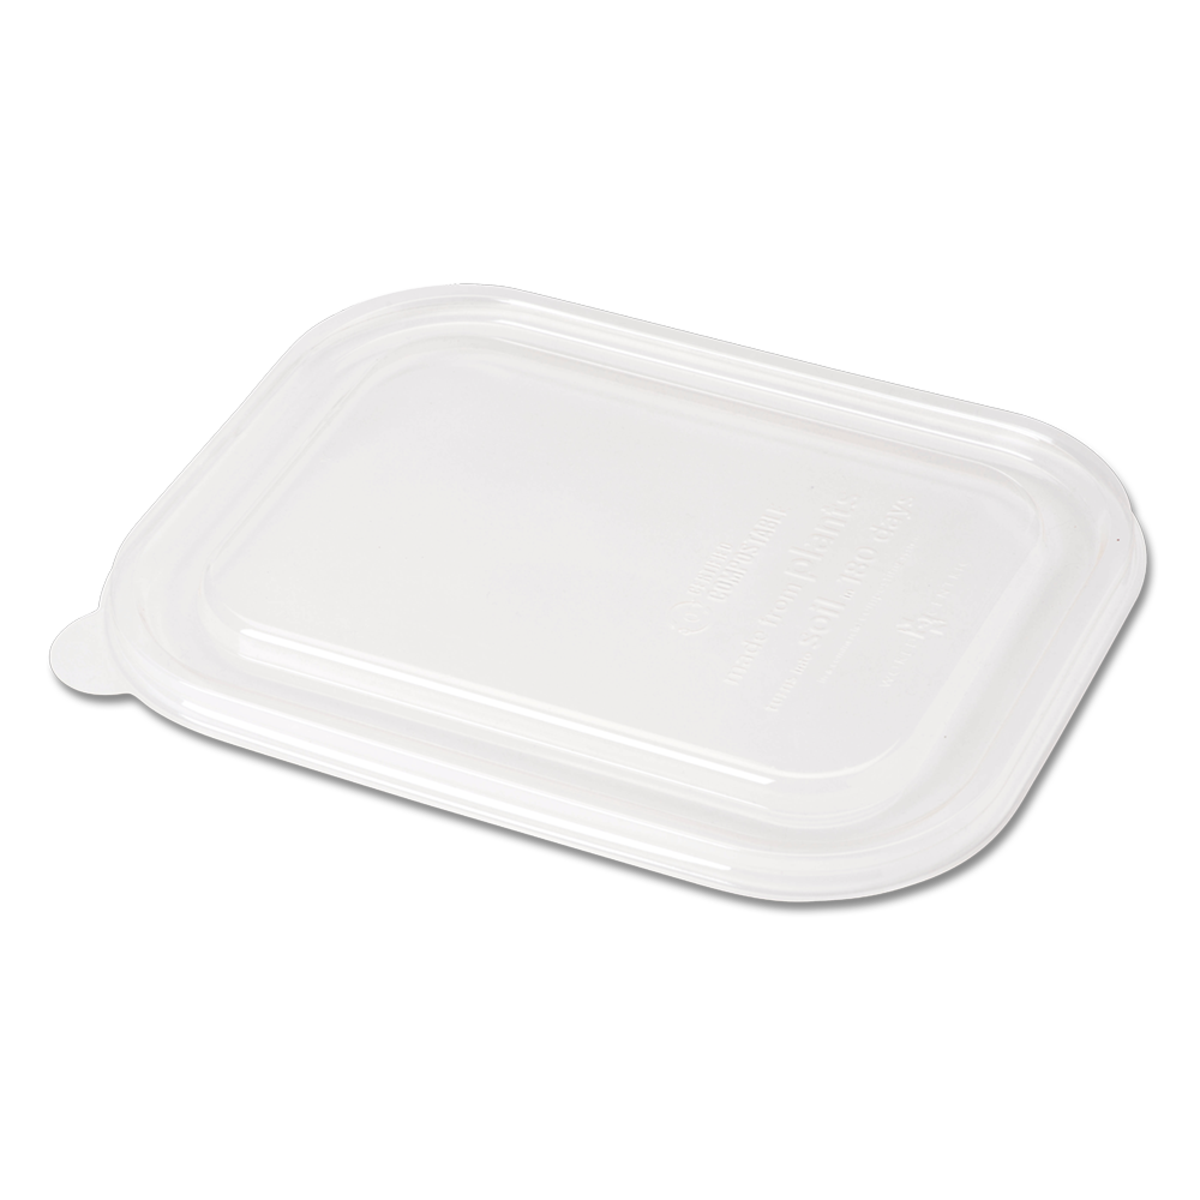 Case of 400 Plant Fiber Box Lids